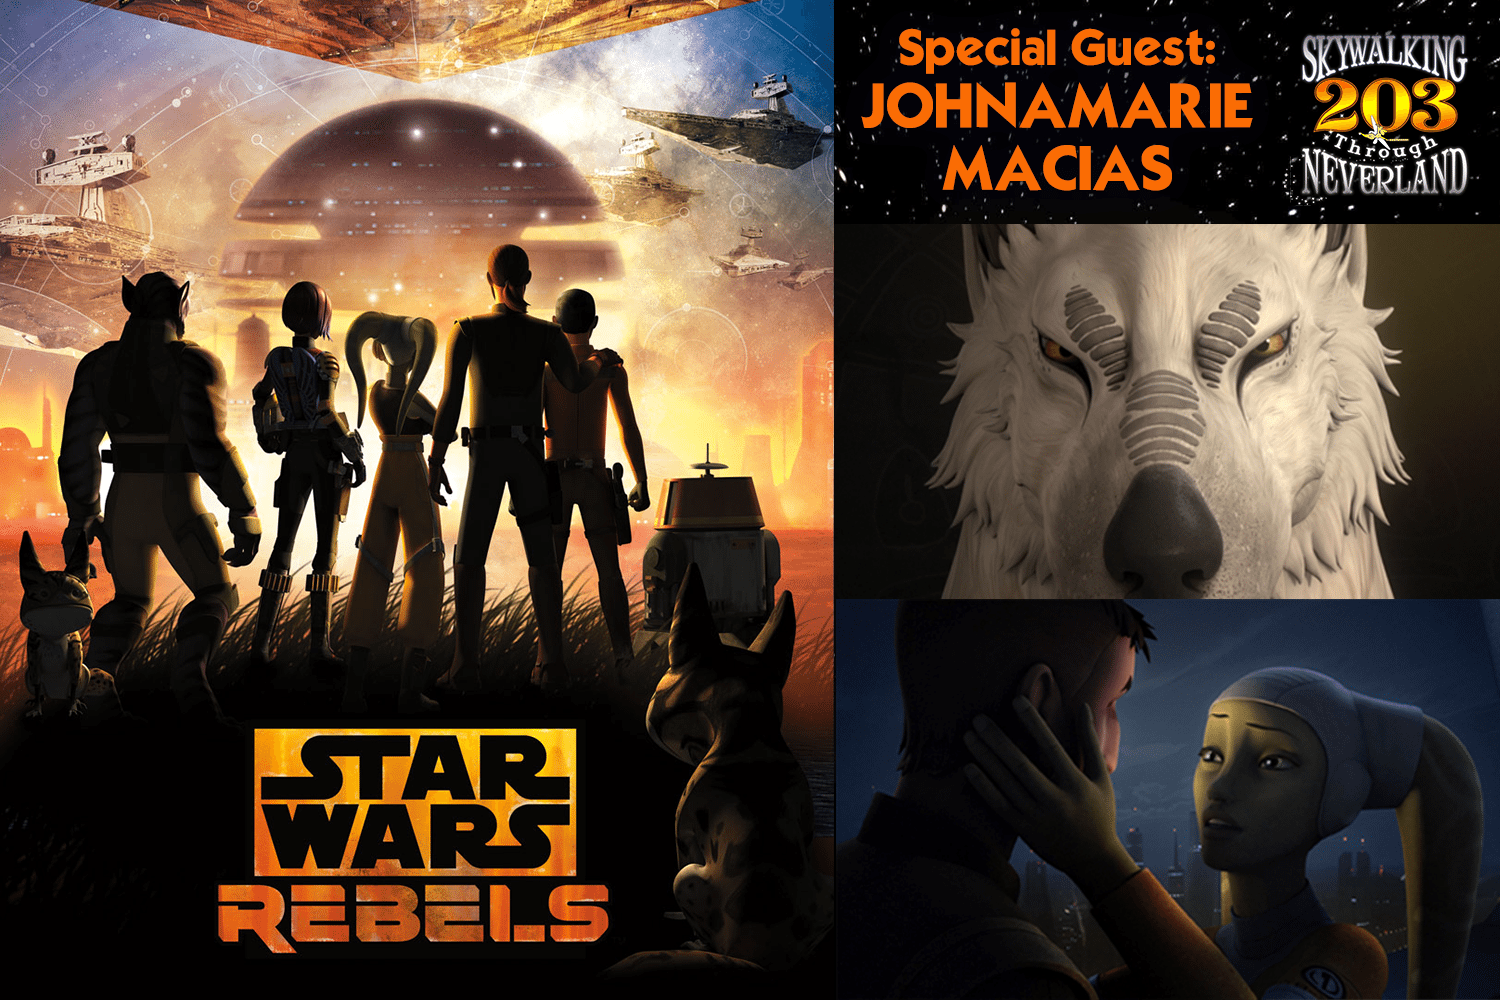 Skywalking Through Neverland #203: Star Wars Rebels with Johnamarie Macias